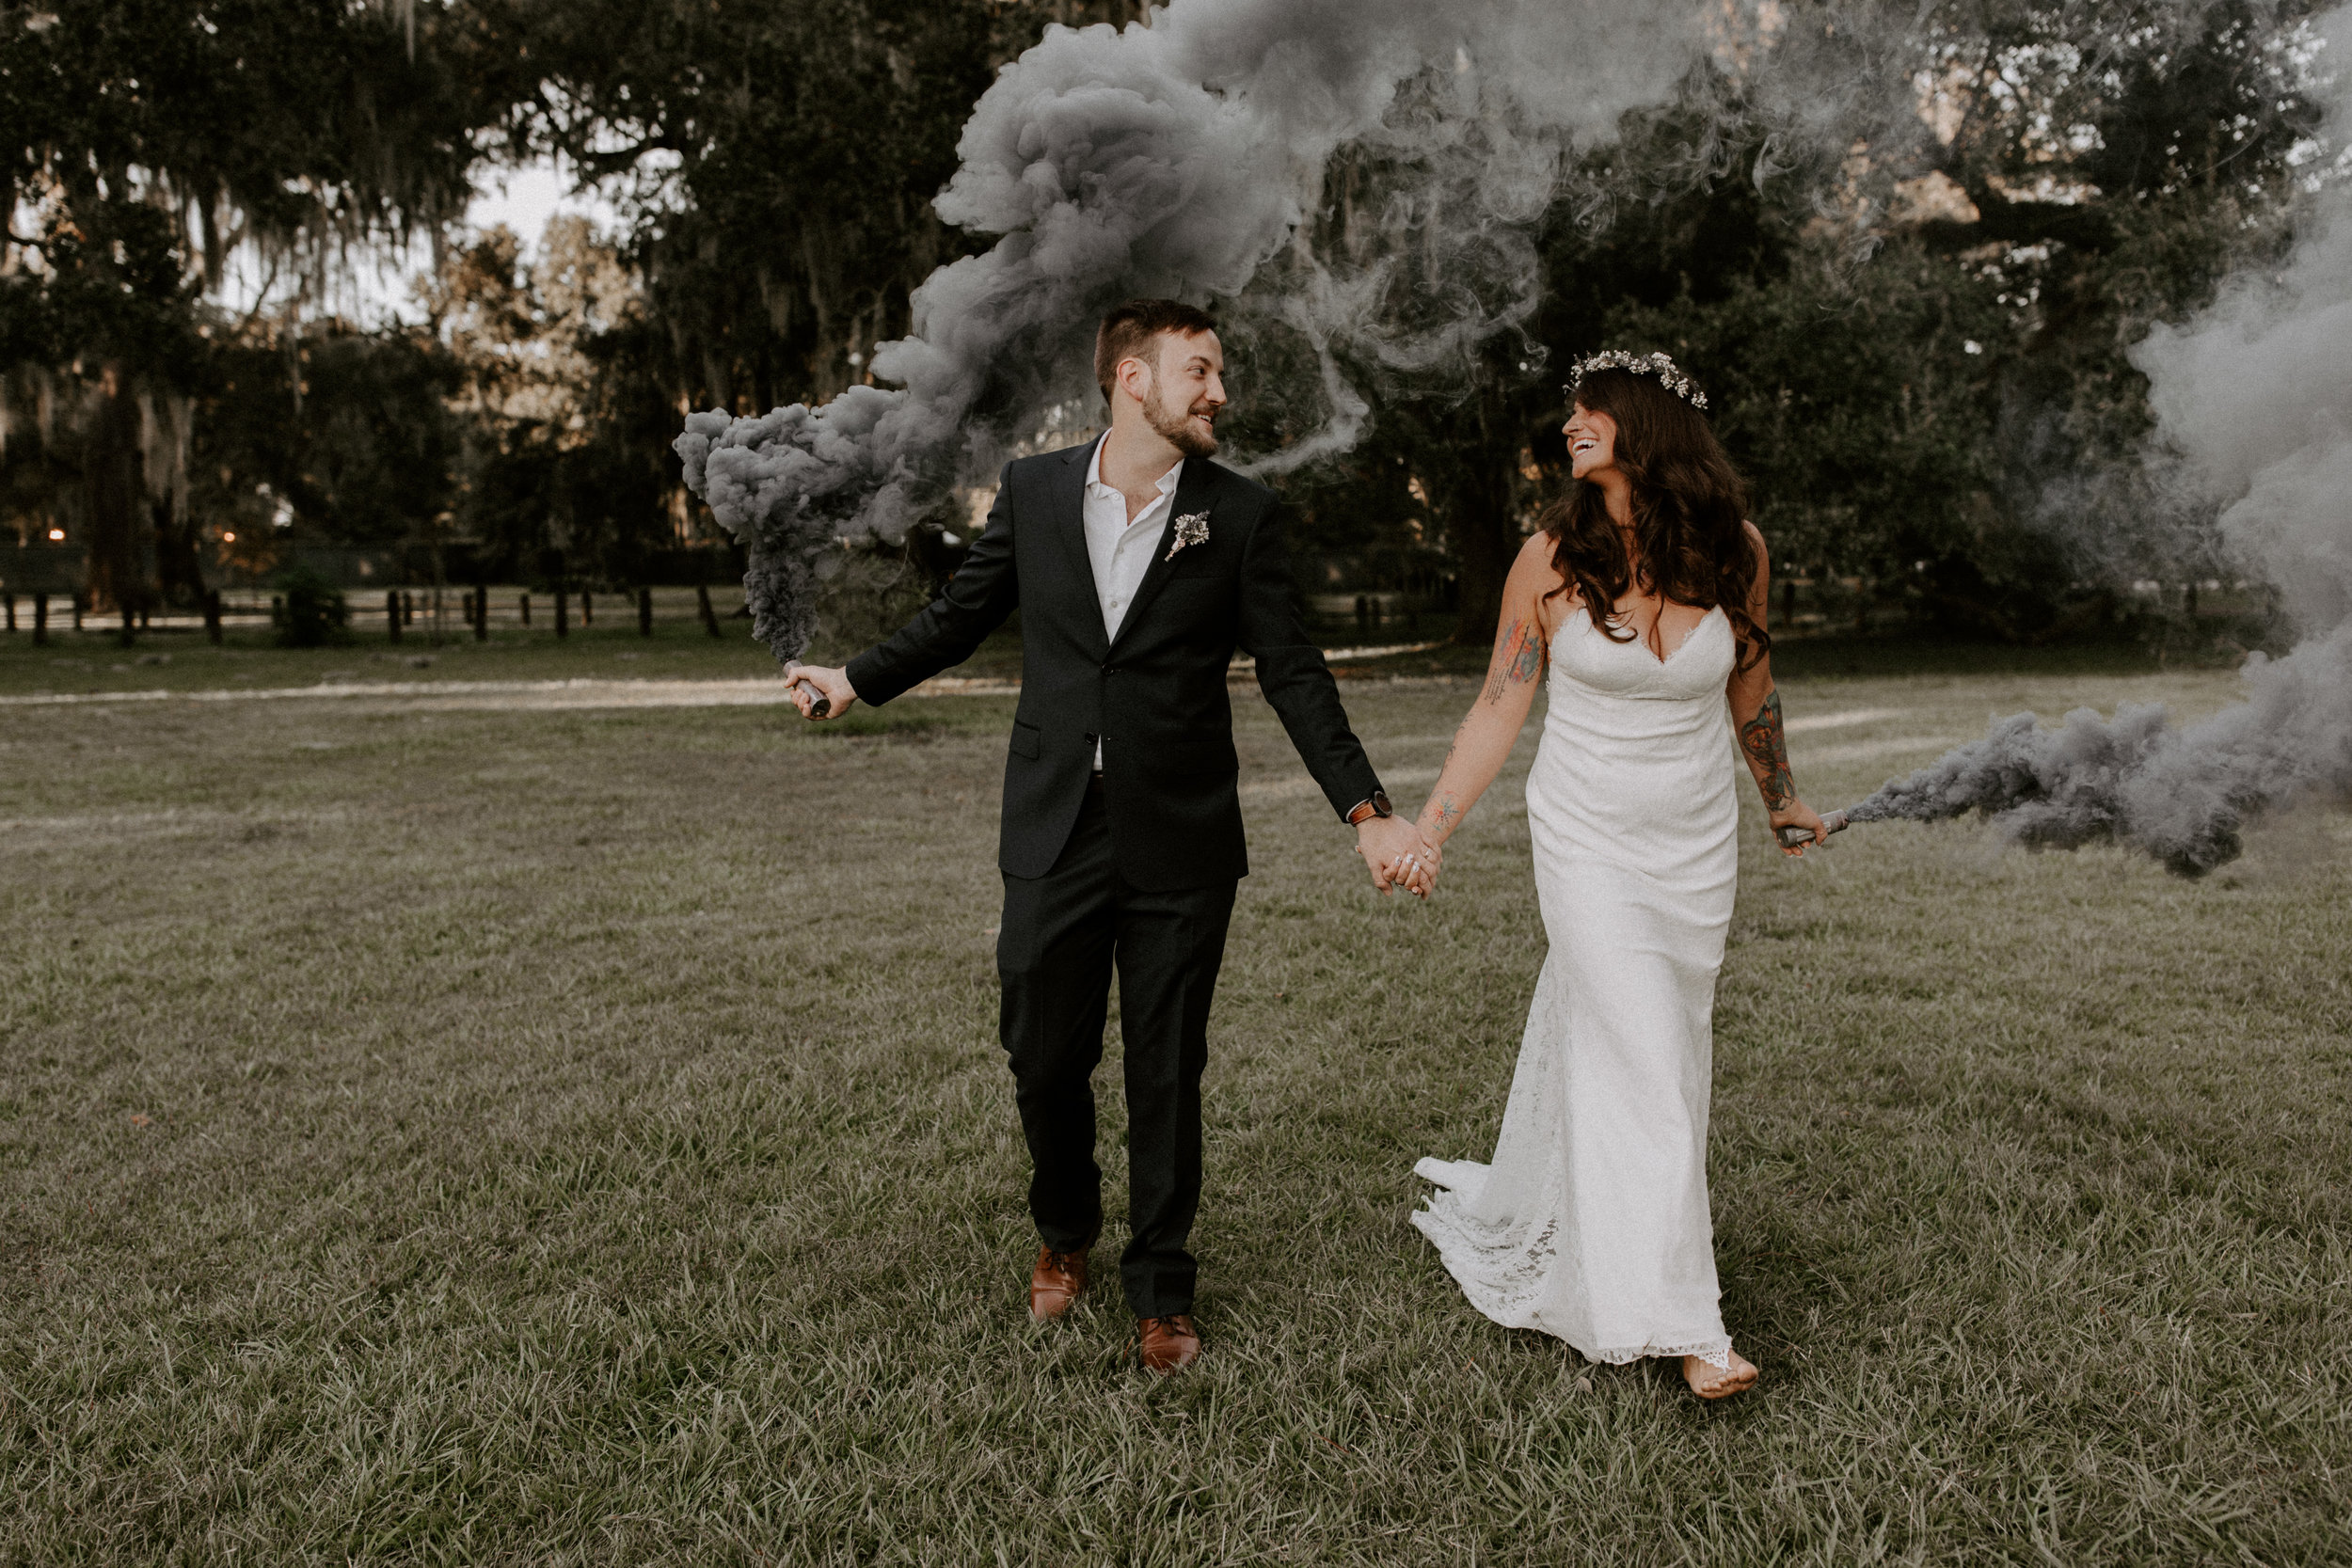 A Free Spirited, Surprise Elopement at The Tree of Life | New Orleans, Louisiana